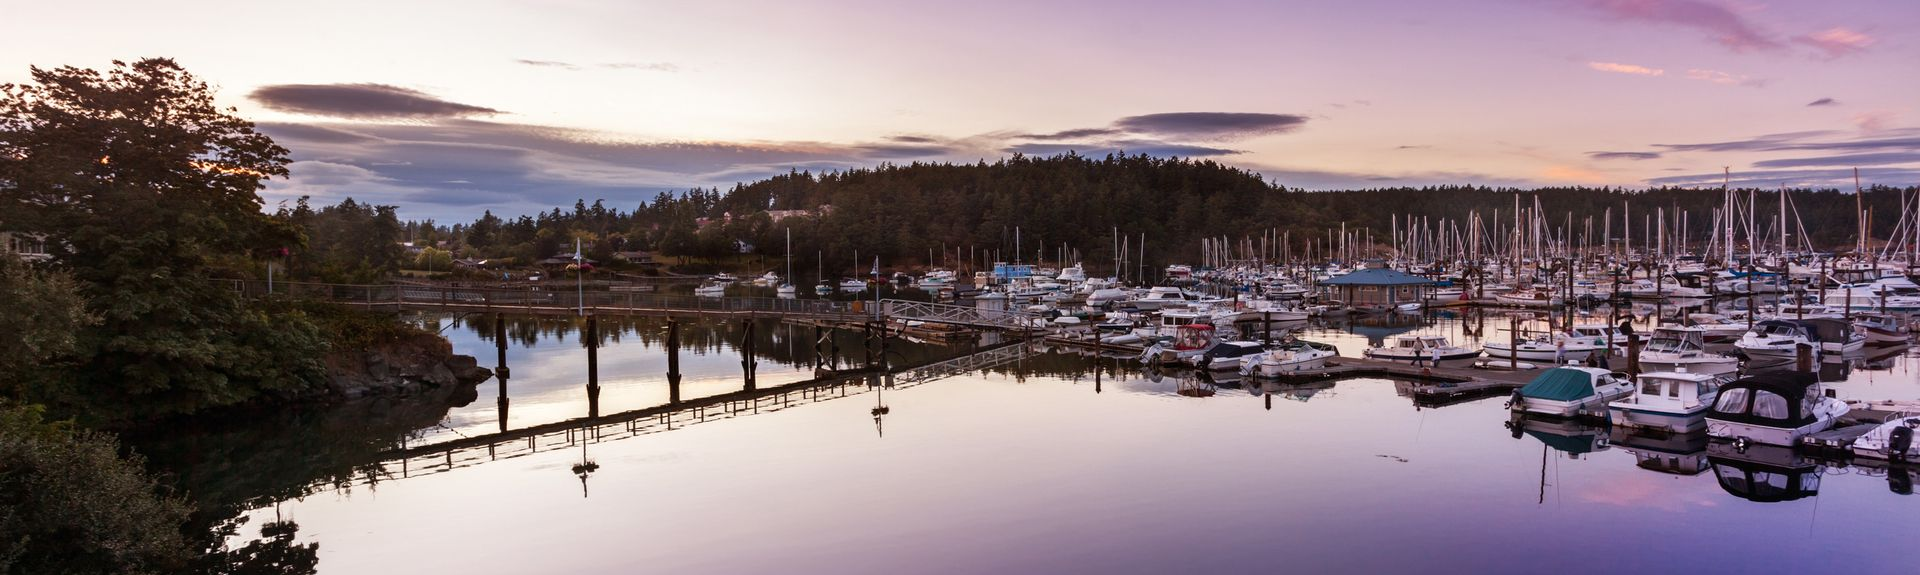 Friday Harbor, Washington, Yhdysvallat